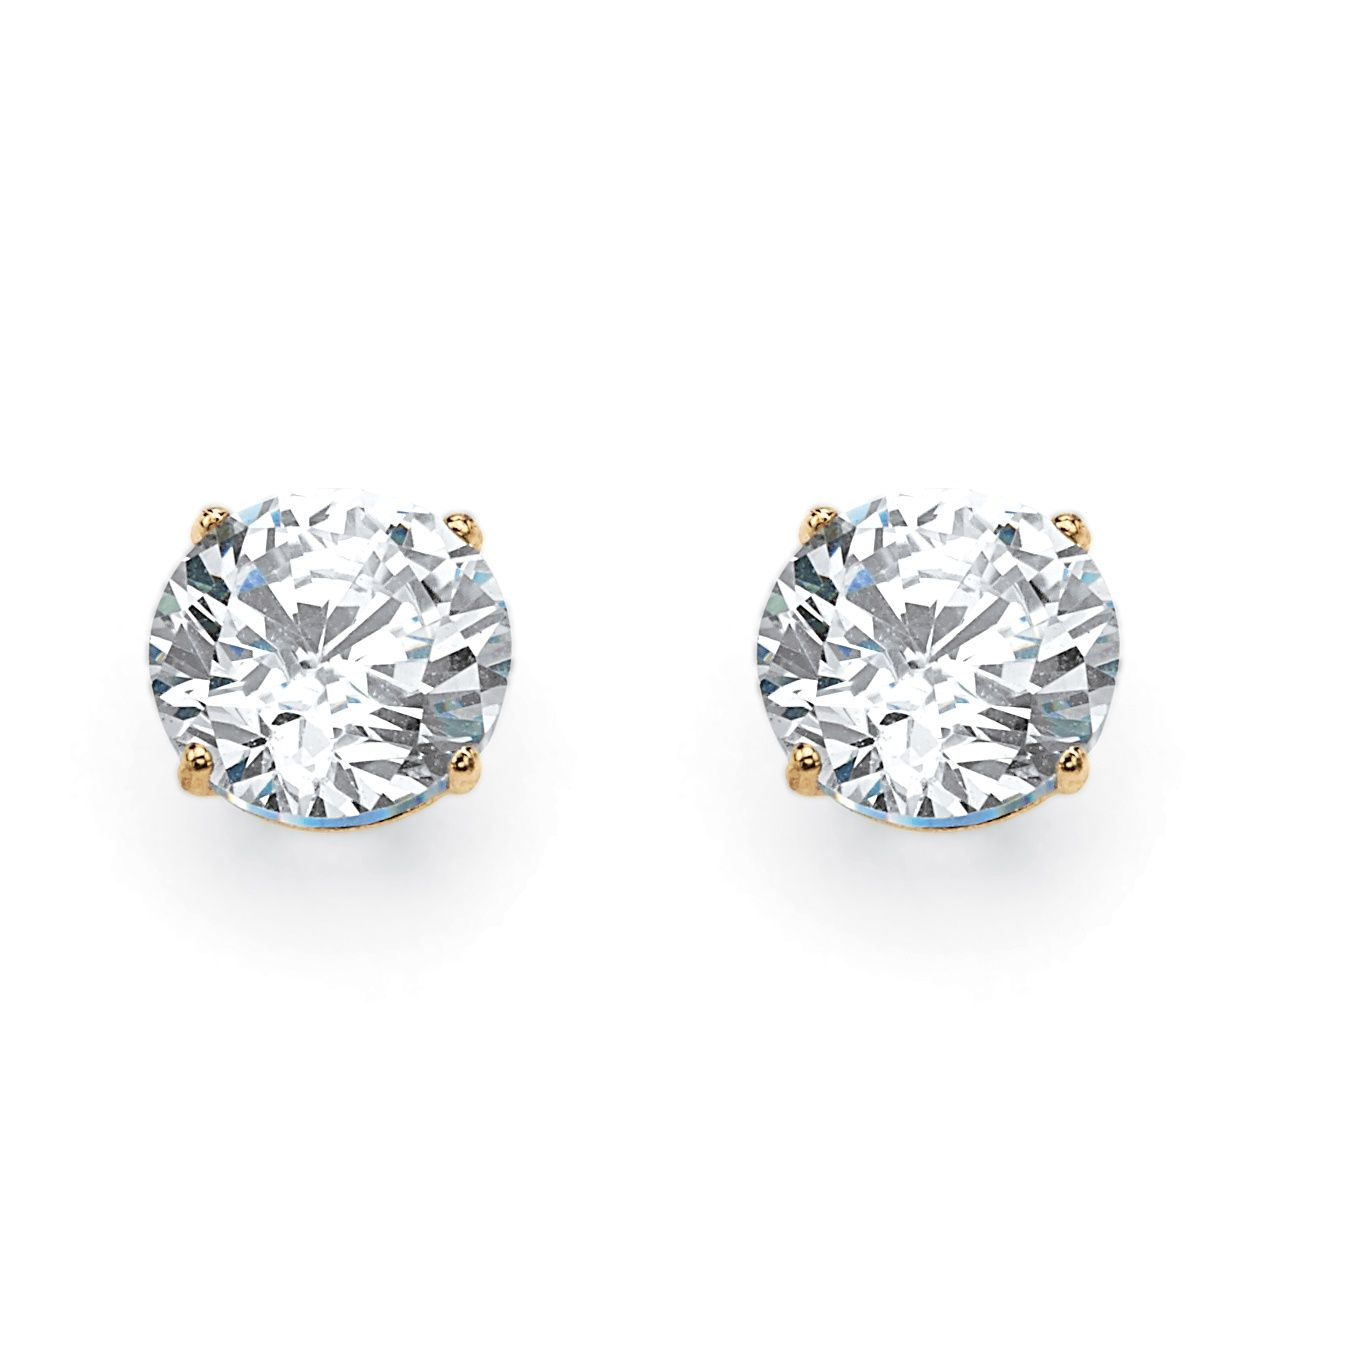 Quintessential Cubic Zirconia Stud Earrings Are An Impressive 1 80 Carats T W Of Brilliance Fashion Stud Earrings Beautiful Stud Earrings Round Stud Earrings